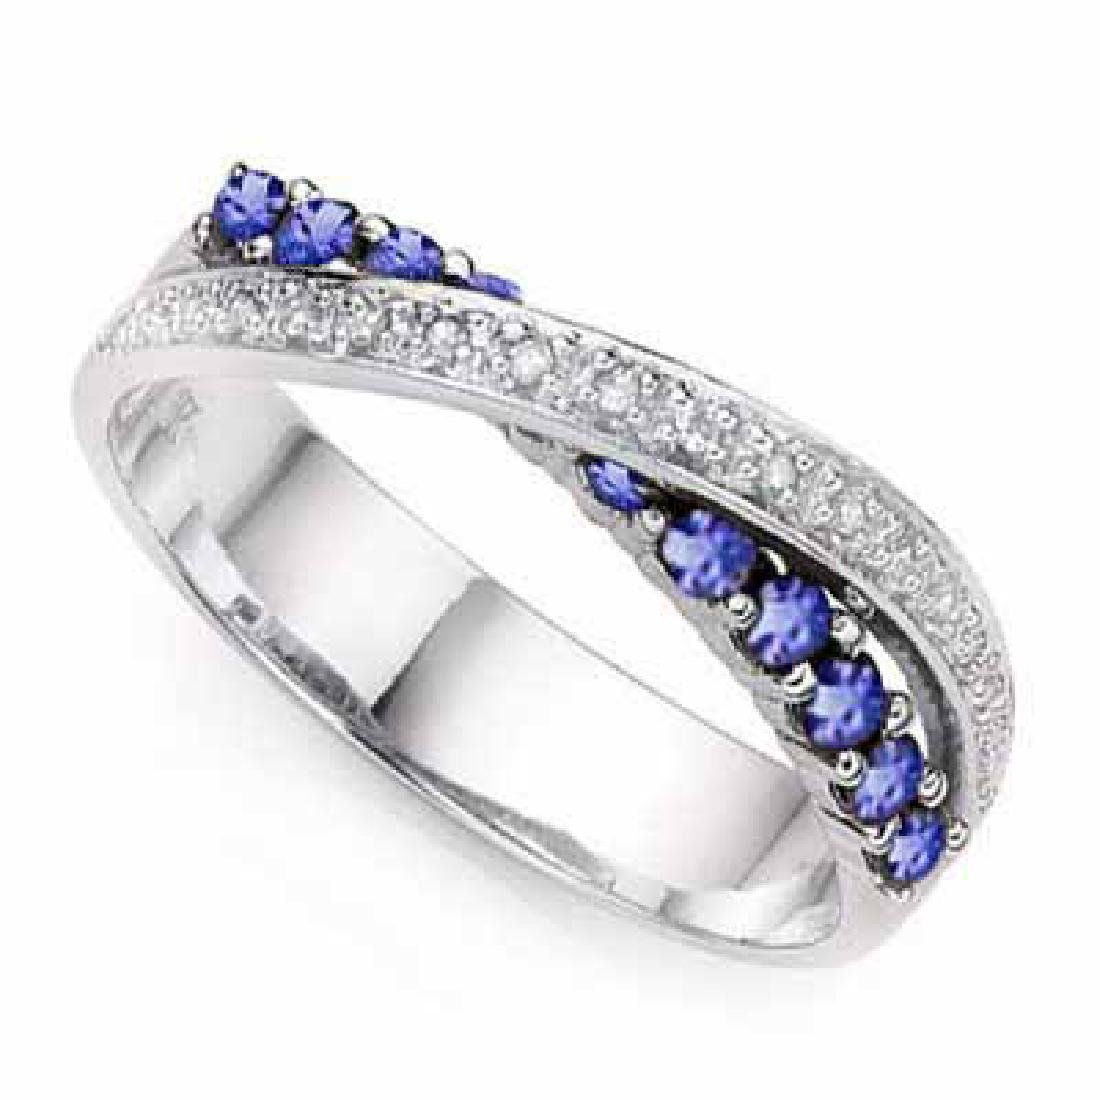 0.46 CT GENUINE TANZANITE & 2 PCS GENUINE DIAMOND PLATI